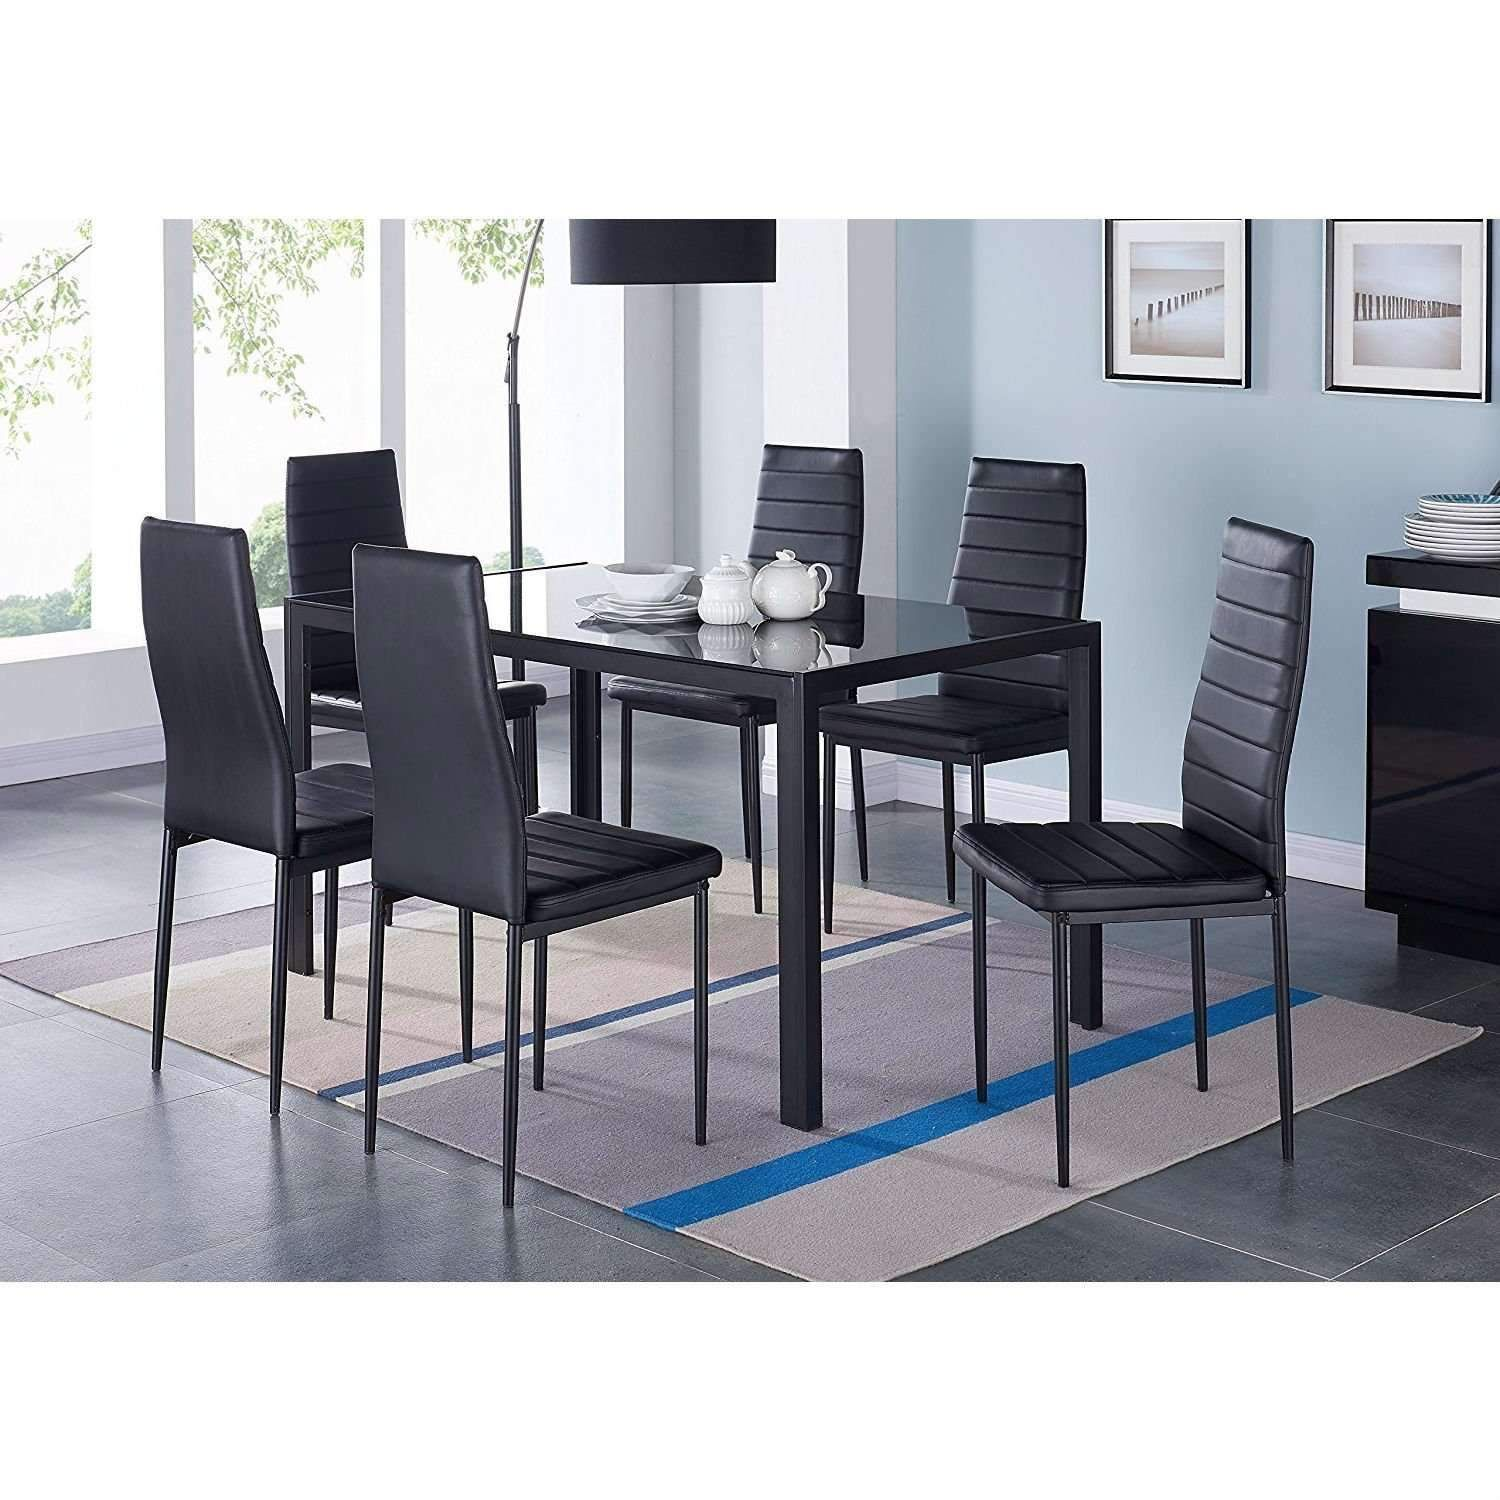 6b708f6233 Modern 7-Piece Dining Set with Glass Top Table in 2019 | Products ...